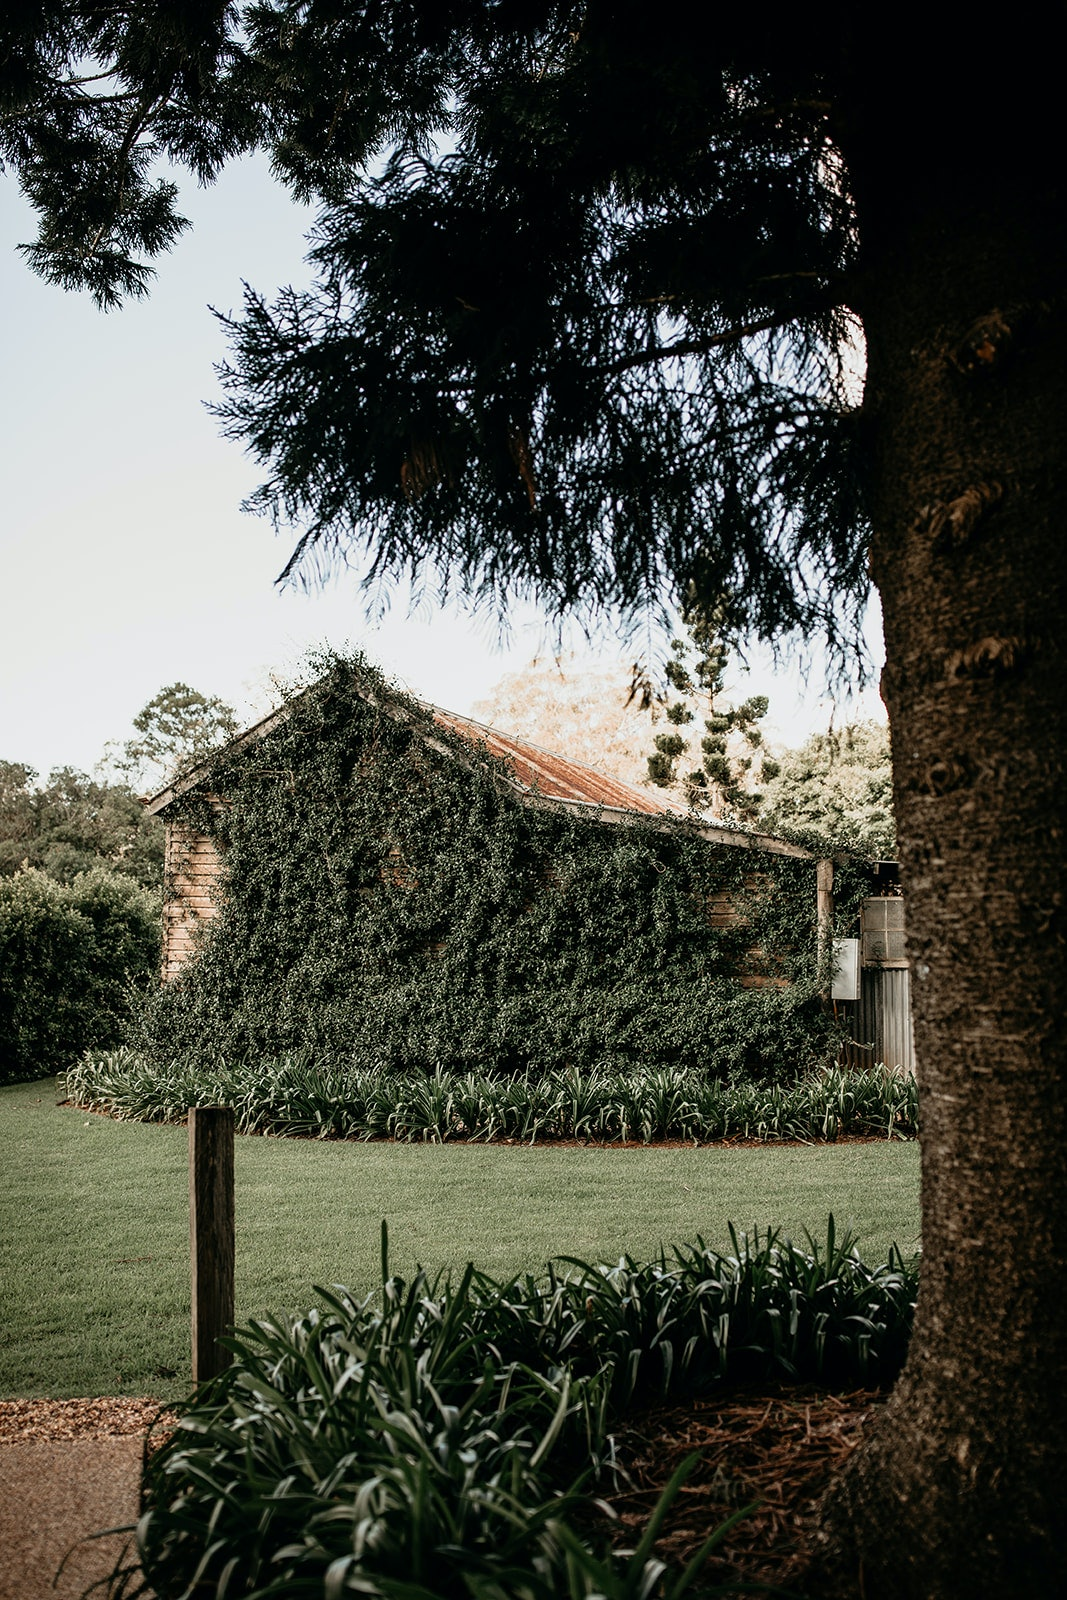 Stables covered with green vines